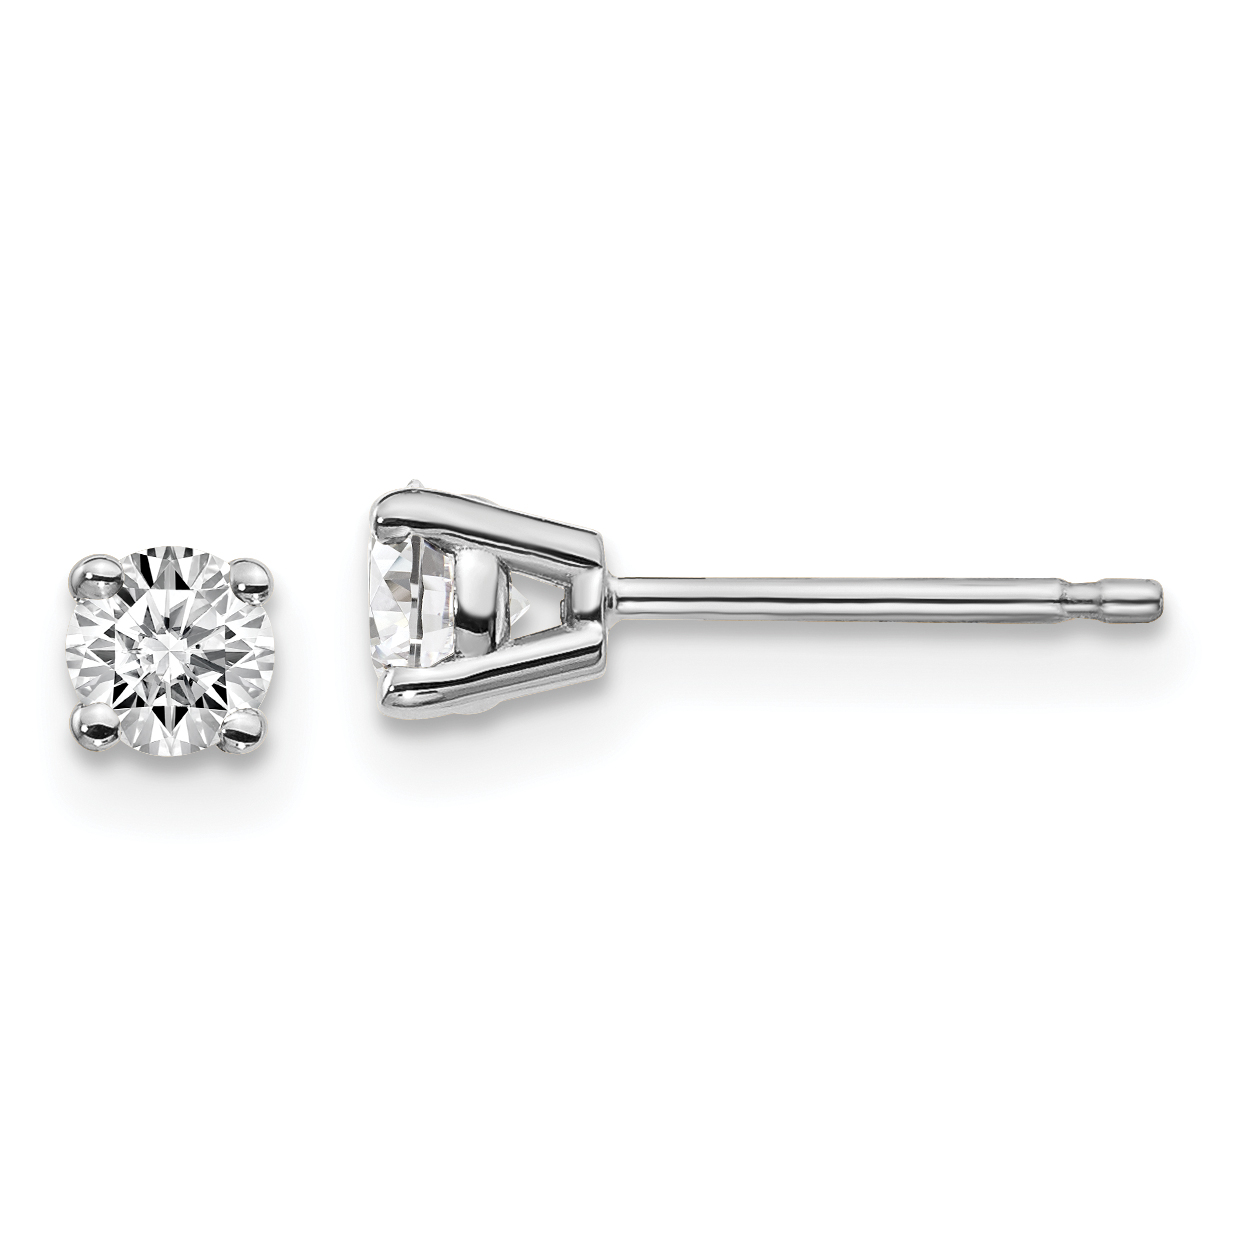 14k White Gold 1/3ctw Certified Vs/si Def Lab Grown Diamond 4 Prong Post Stud Earrings Fine Jewelry Gifts For Women For Her - image 2 of 2